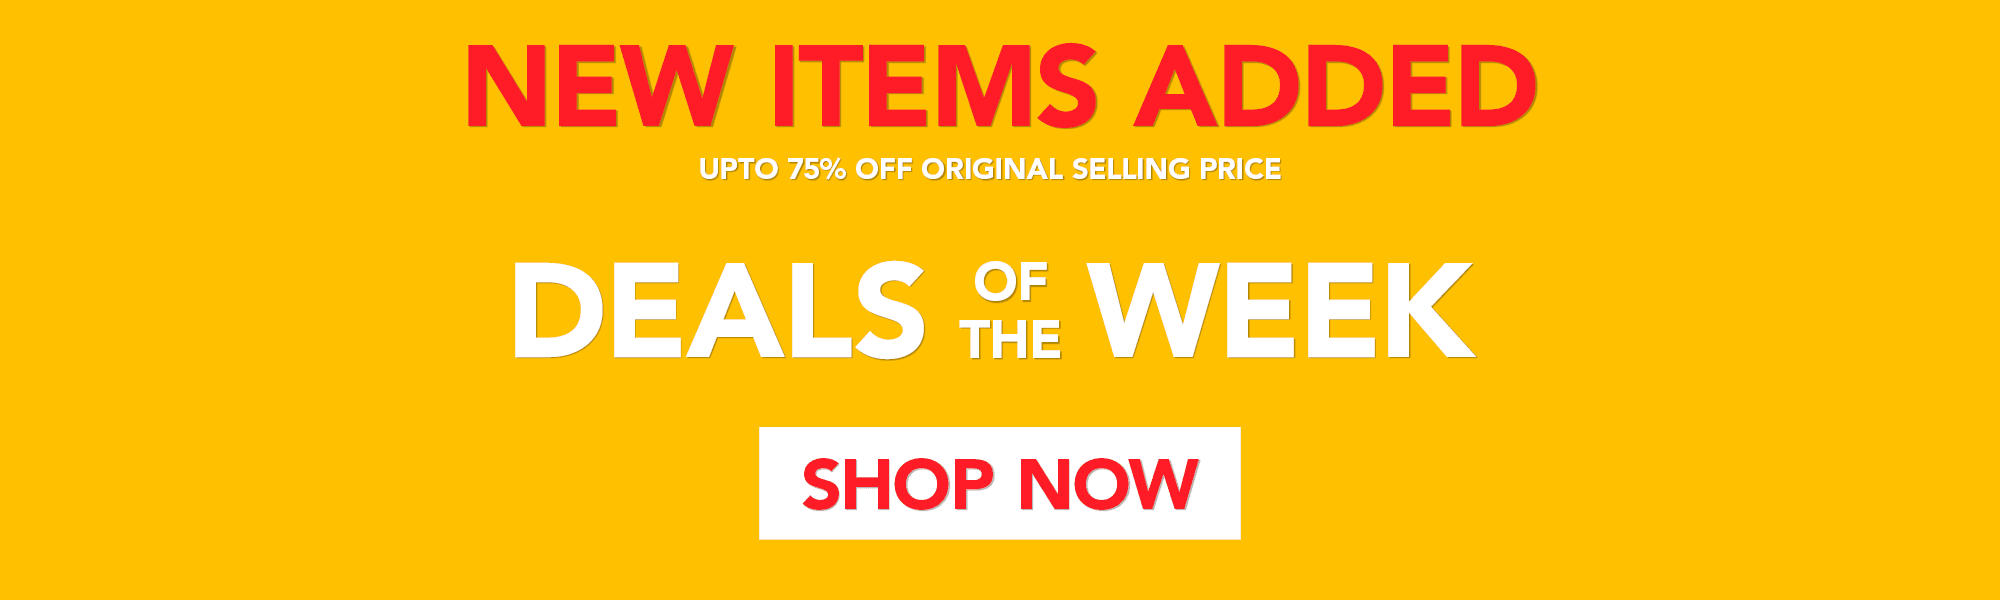 Deals of the Week - Upto 75% off Original Selling Price